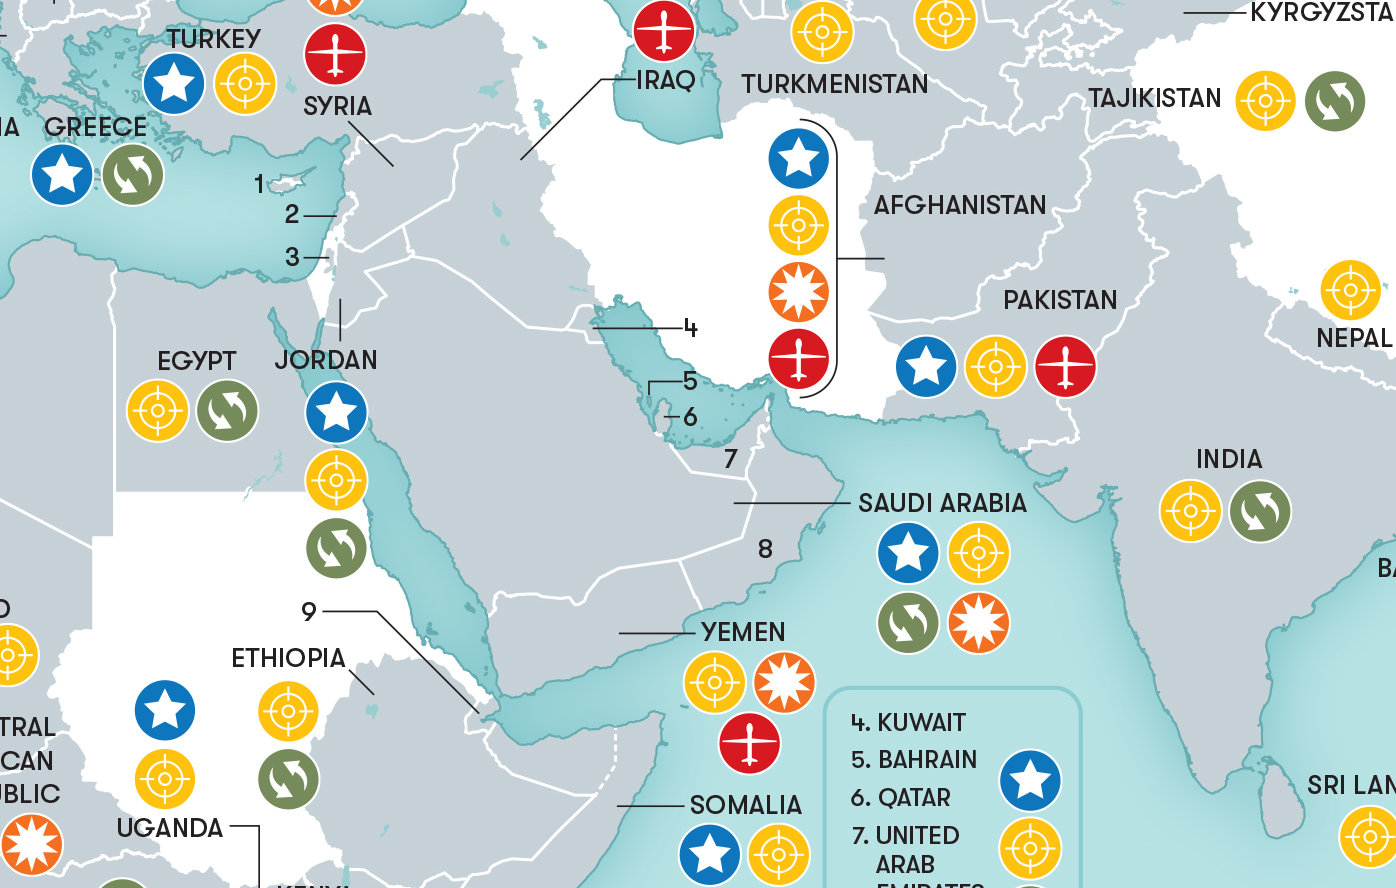 This Map Shows Where In The World The Us Military Is Combatting - Map-of-all-army-bases-in-the-us